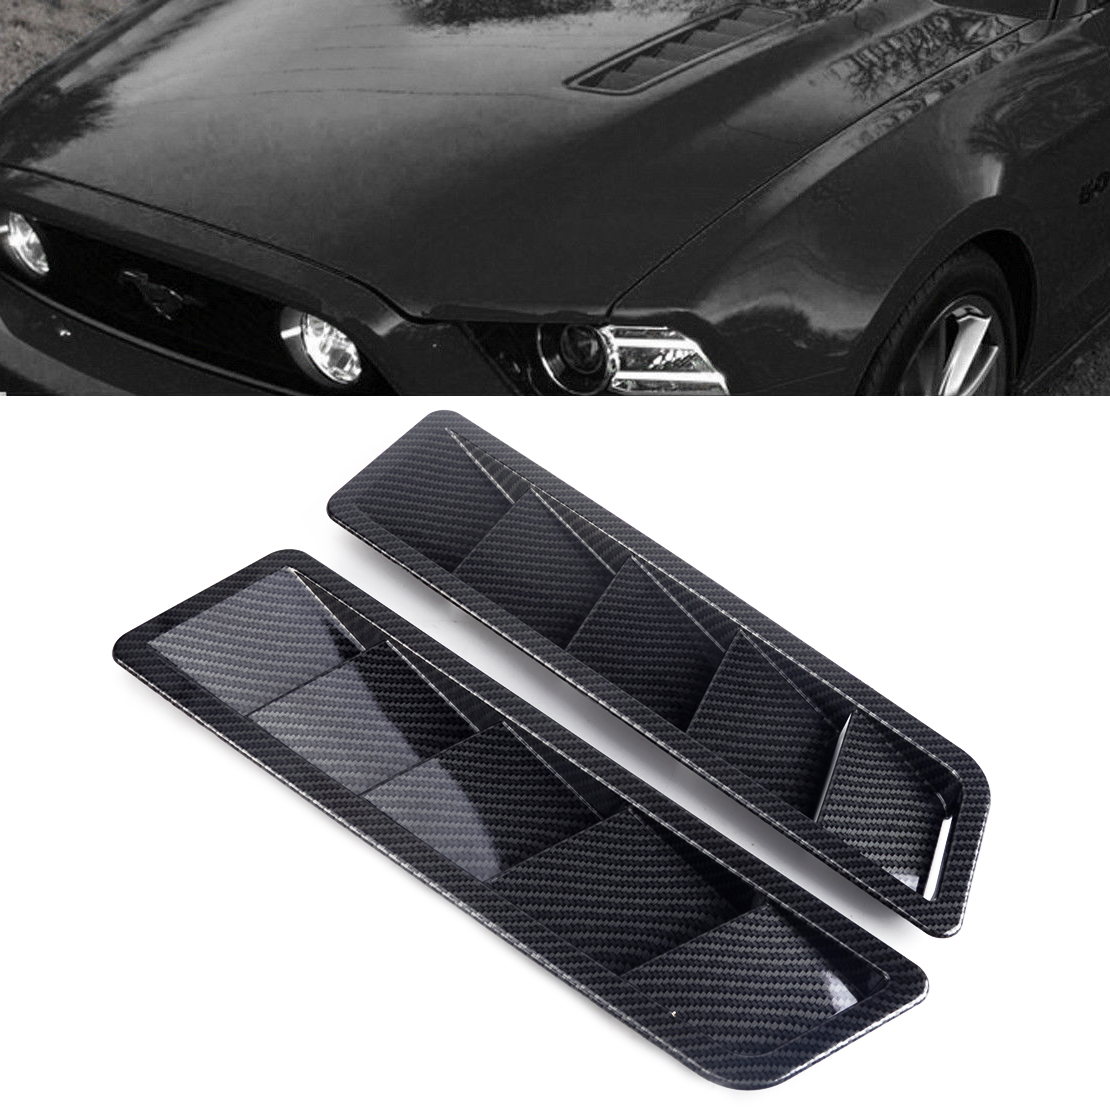 CITALL 2pcs Universal ABS Solid Carbon Fiber Style Car Hood Vent Louver Cooling Panel Trim Styling